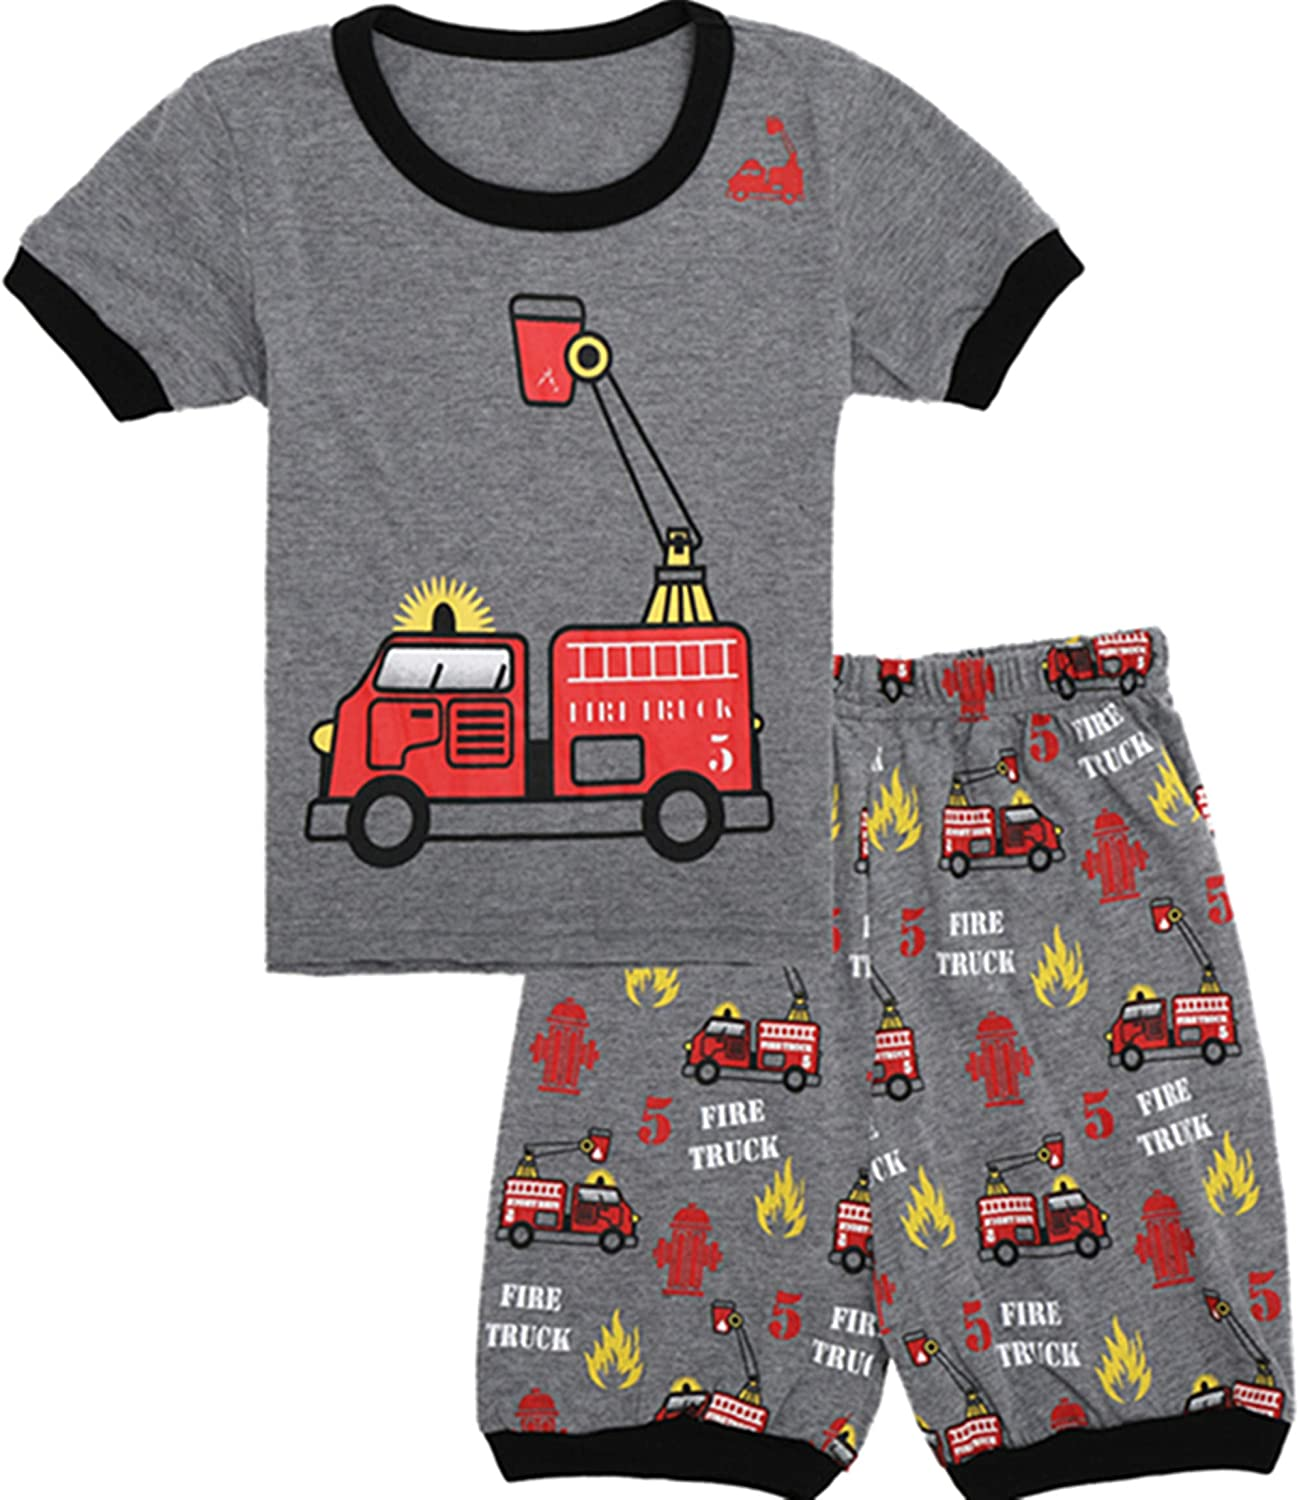 Qtake Fashion Boys Pajamas Summer Short Children Clothes Set 100/% Cotton Little Kids Pjs Sleepwear Size 12M-12Years